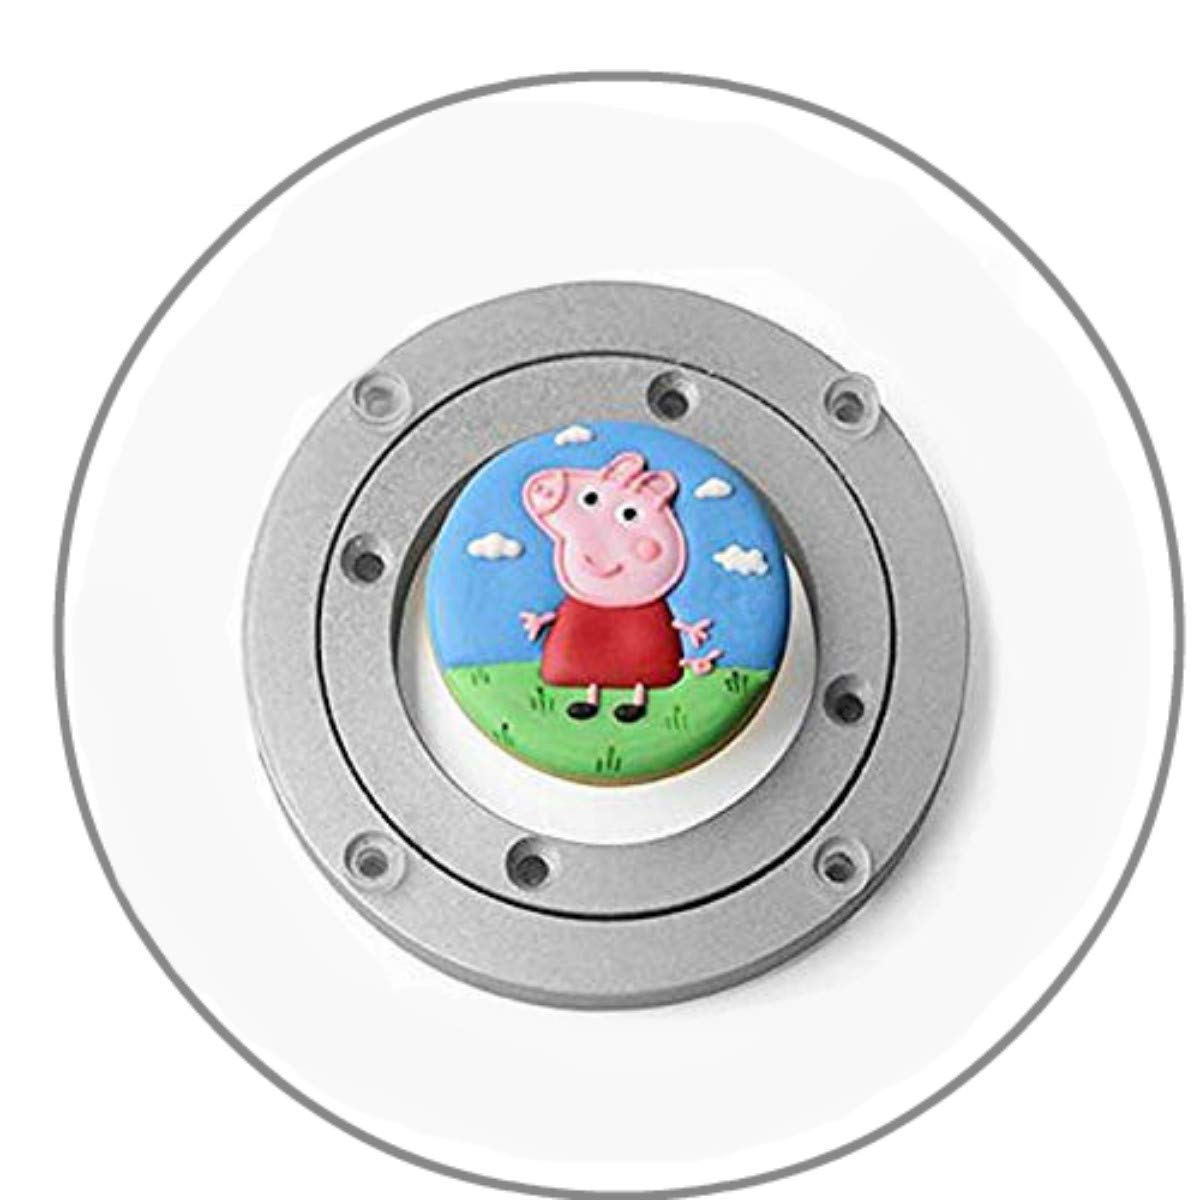 Cupcake Decorating Turntable QBOSO Acrylic Swivel Lazy Susan for Cookie Making (Round)